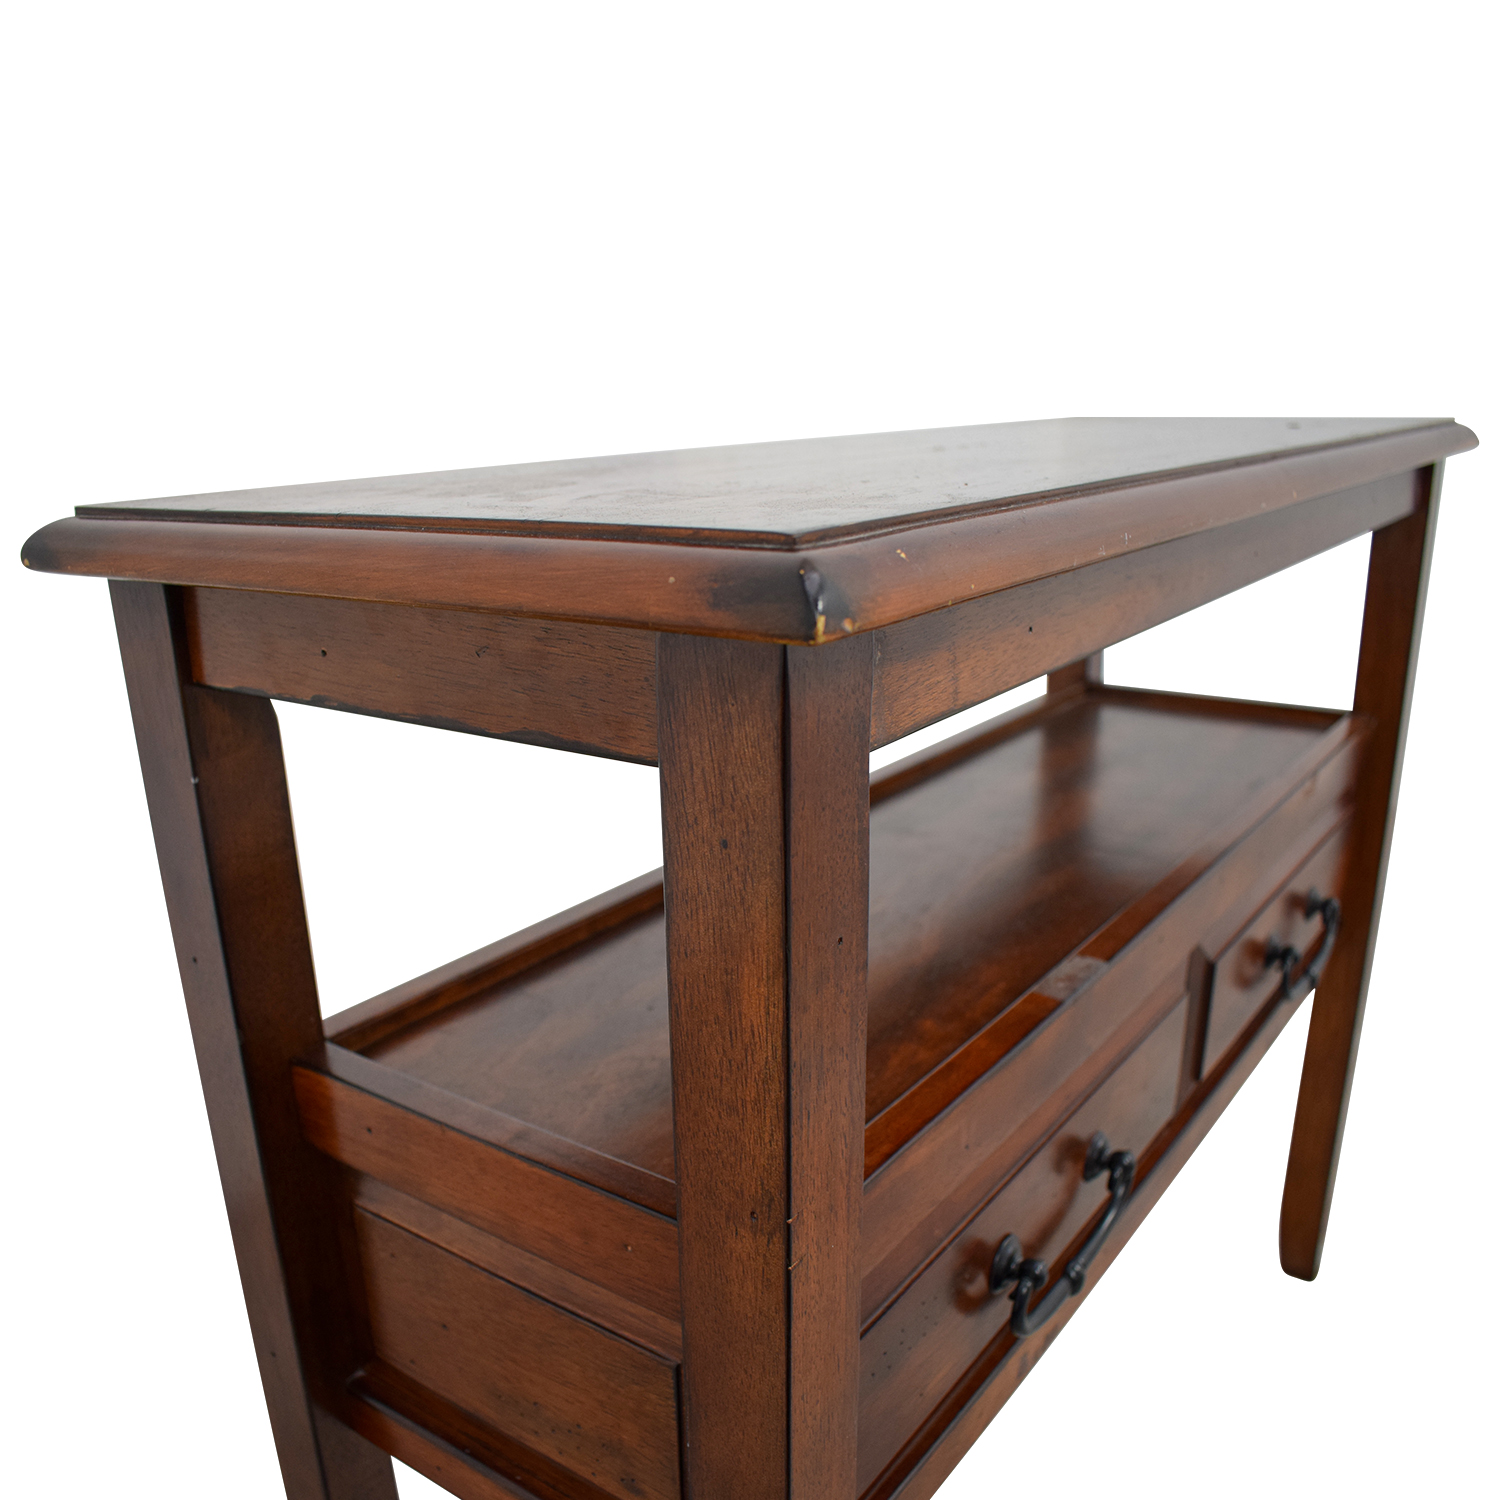 Pier1 Dining Table: Pier 1 Imports Pier 1 Imports Wood Two-Drawer